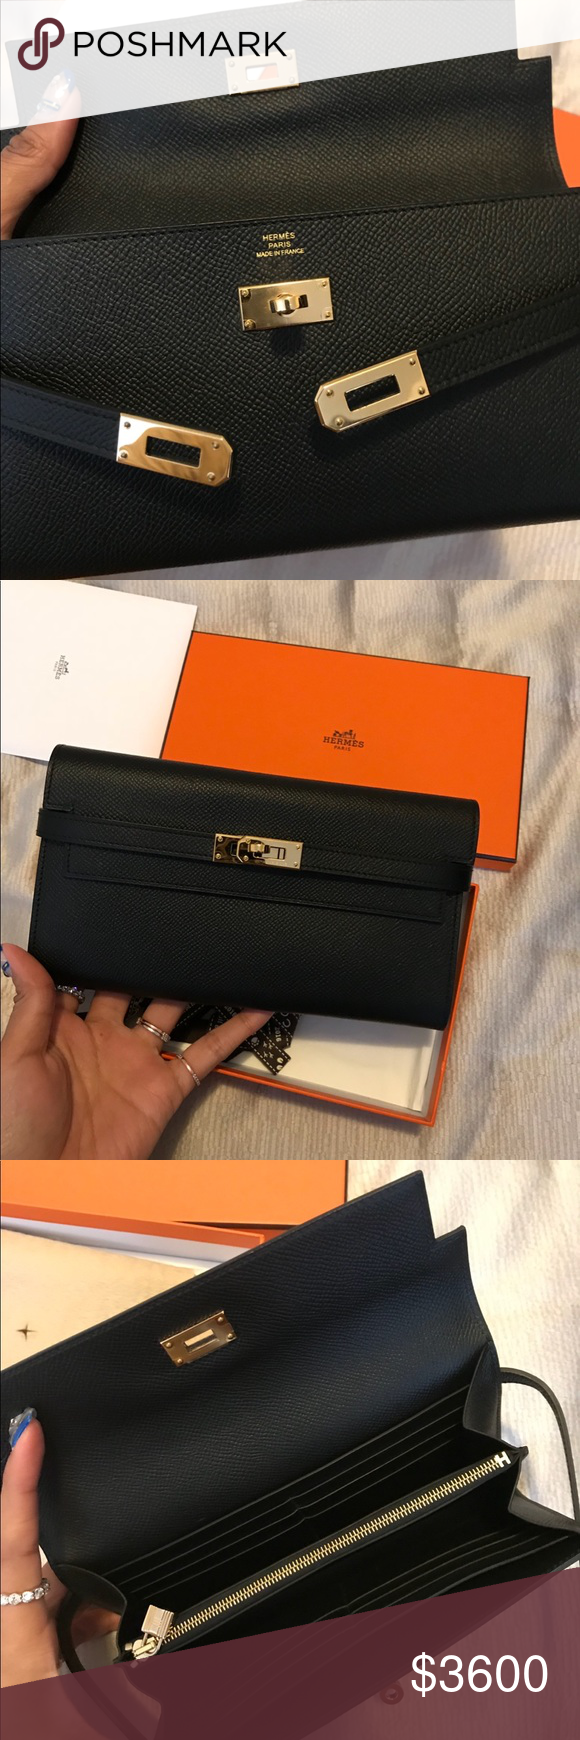 cb8981366f1 Authentic Hermès Kelly classic wallet Authentic kelly classic wallet in blk  and ghw Almost like new Come with box Only selling as the right price  Authentic ...